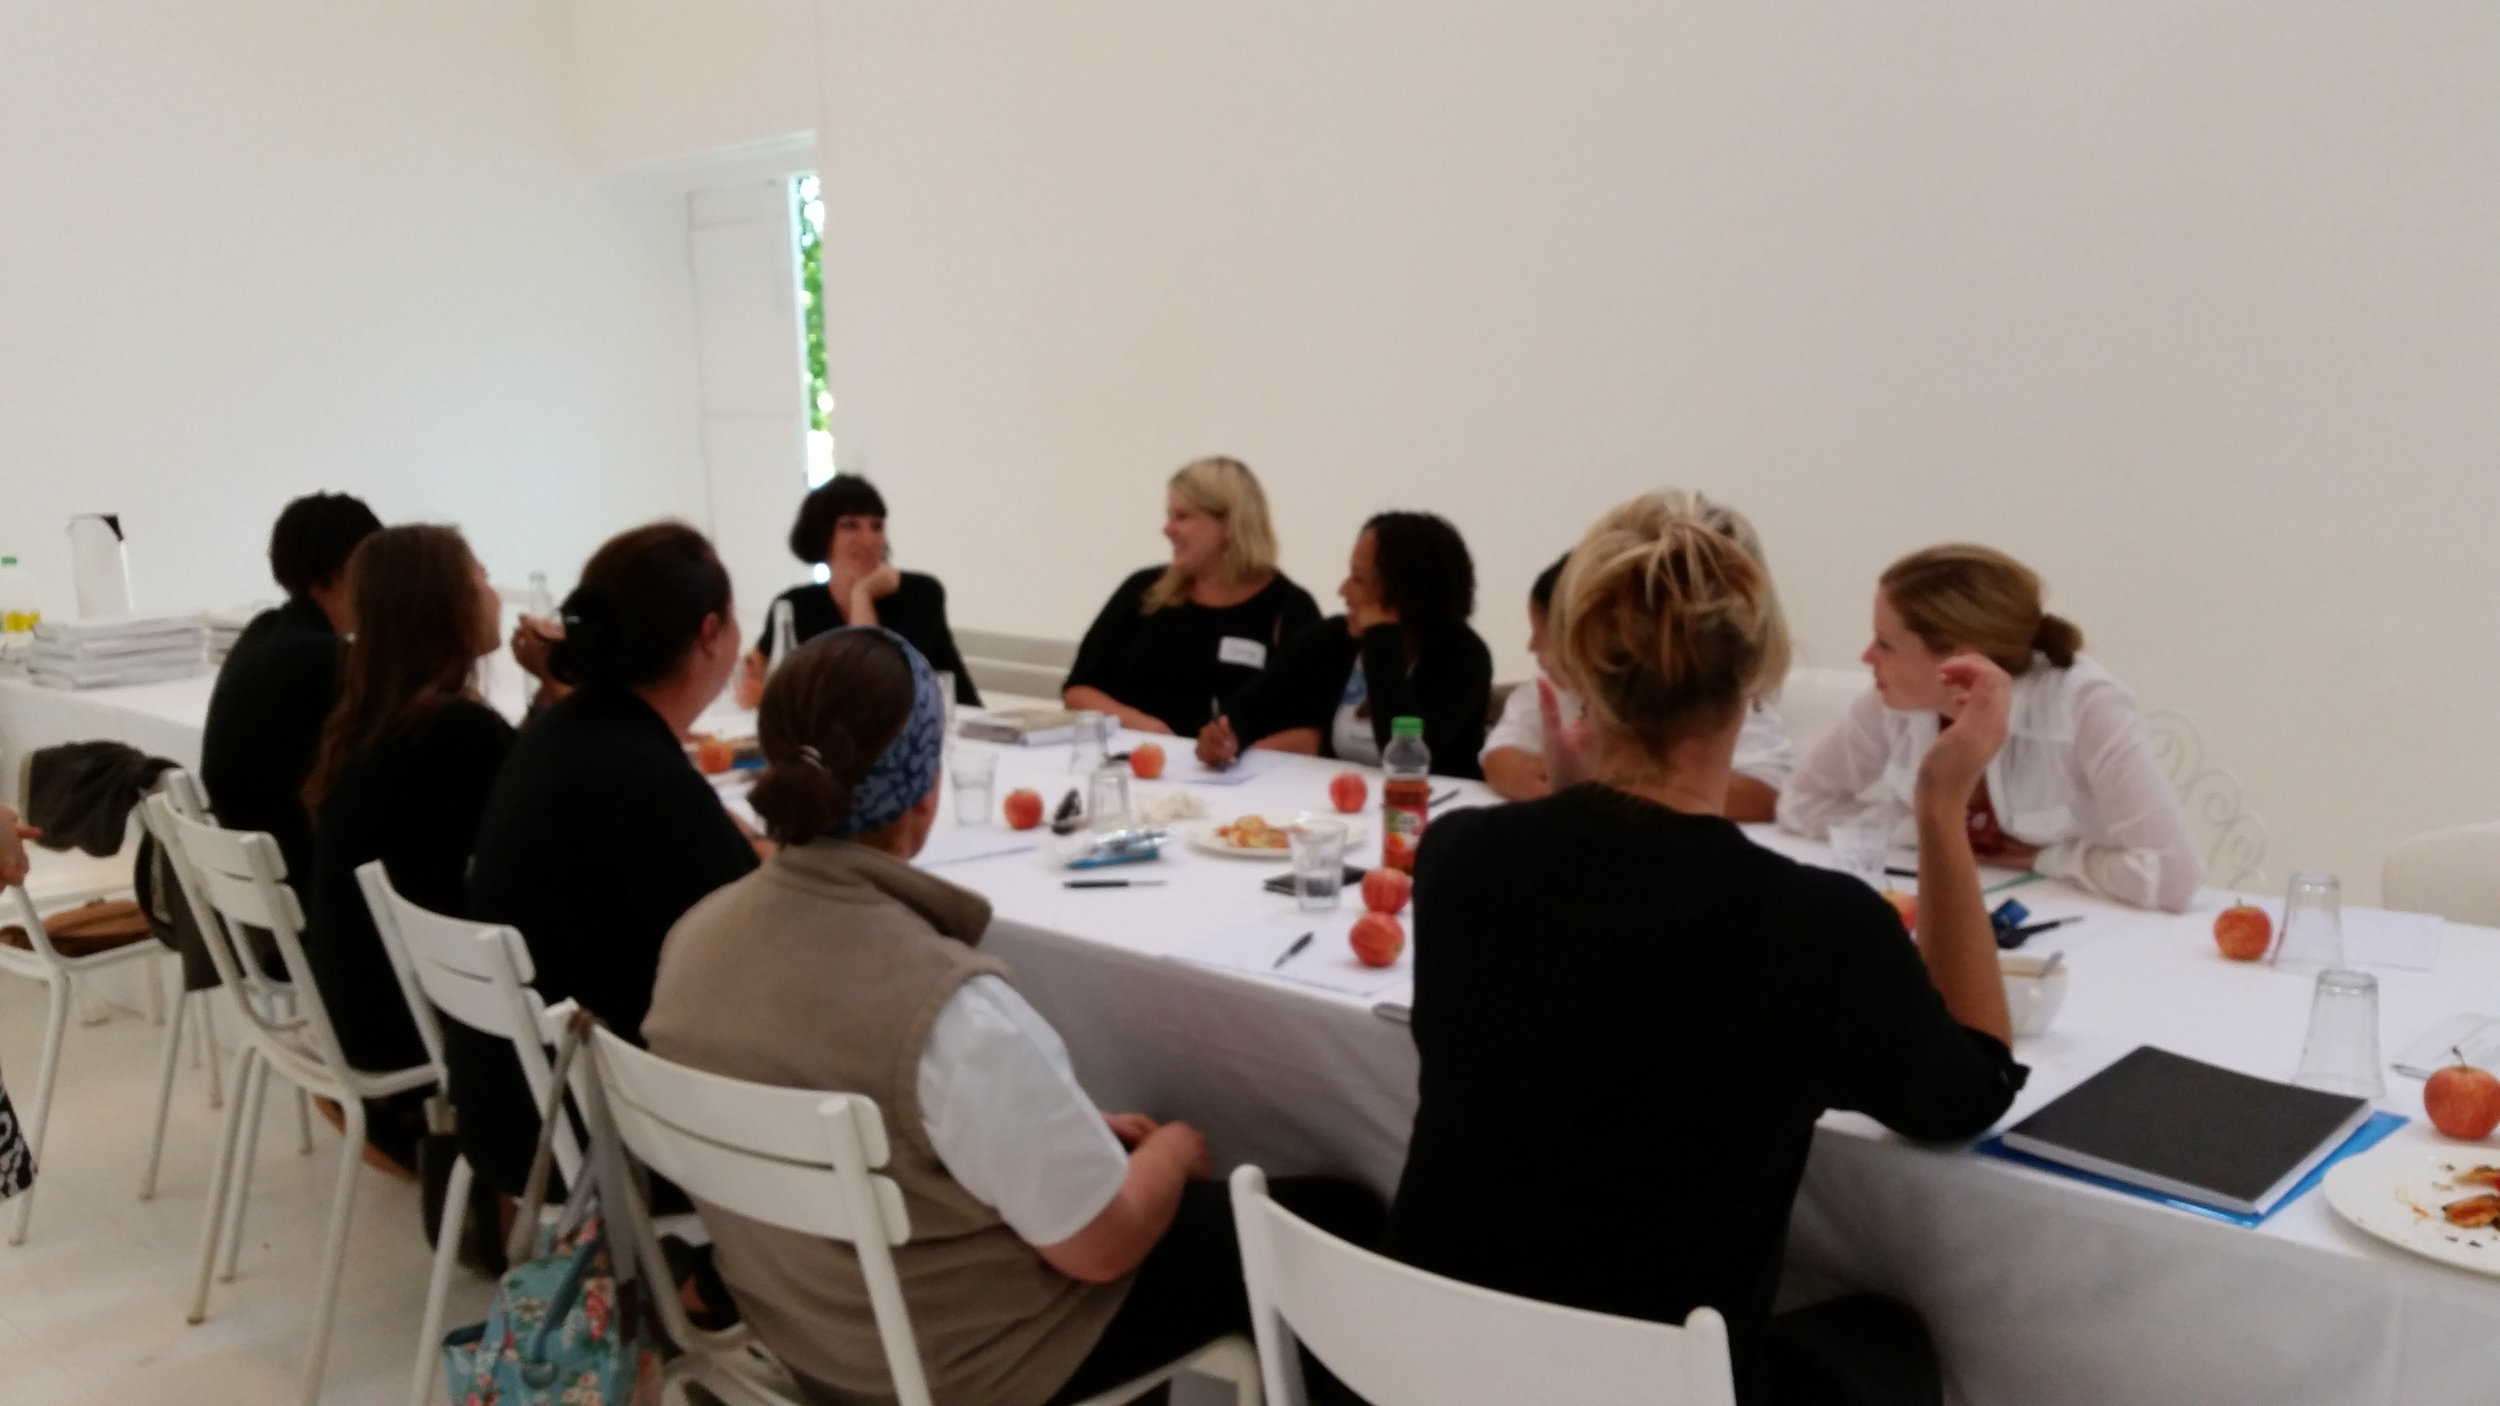 Design and facilitated Action Learning sets with members of the food and beverage team at Babylonstoren (Paarl) which resulted in significant shifts in the team relatedness and productivity.